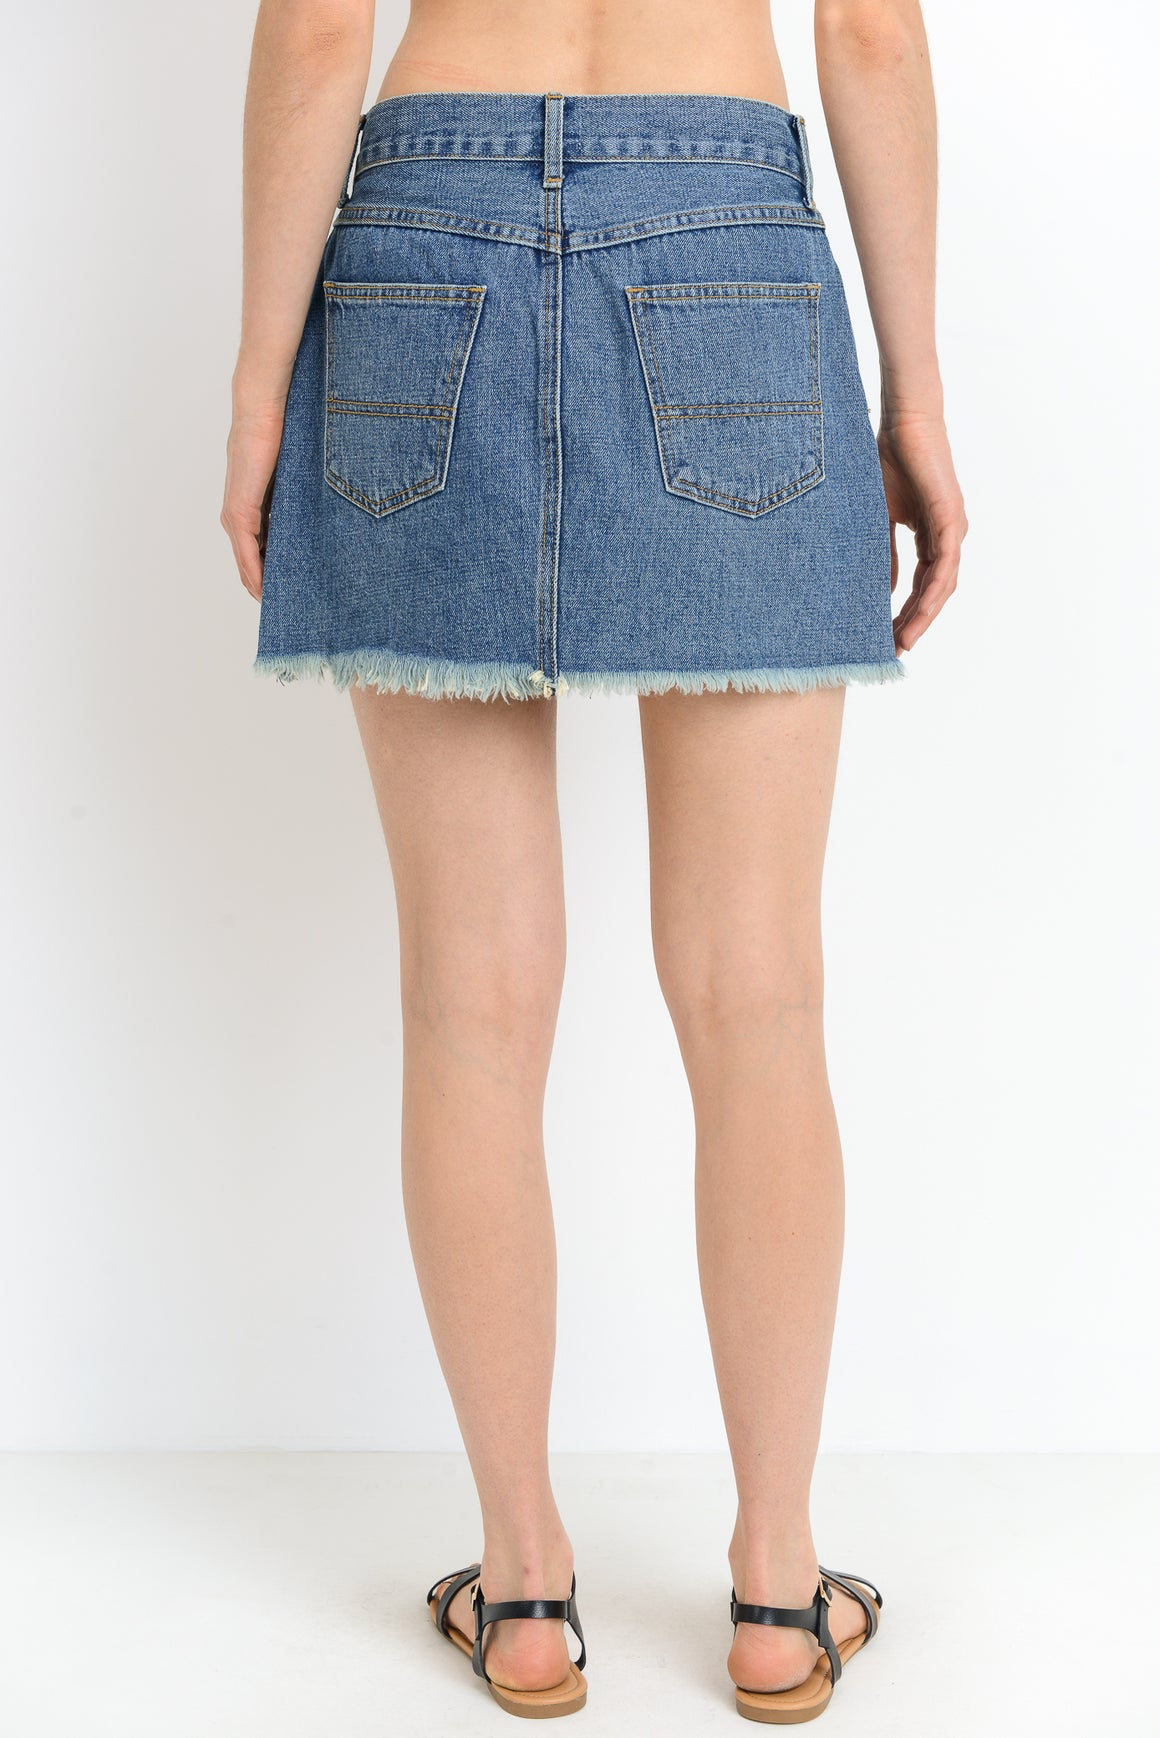 Denim Mini Skirt with Fringe Hem | Cayman & Co. Boutique